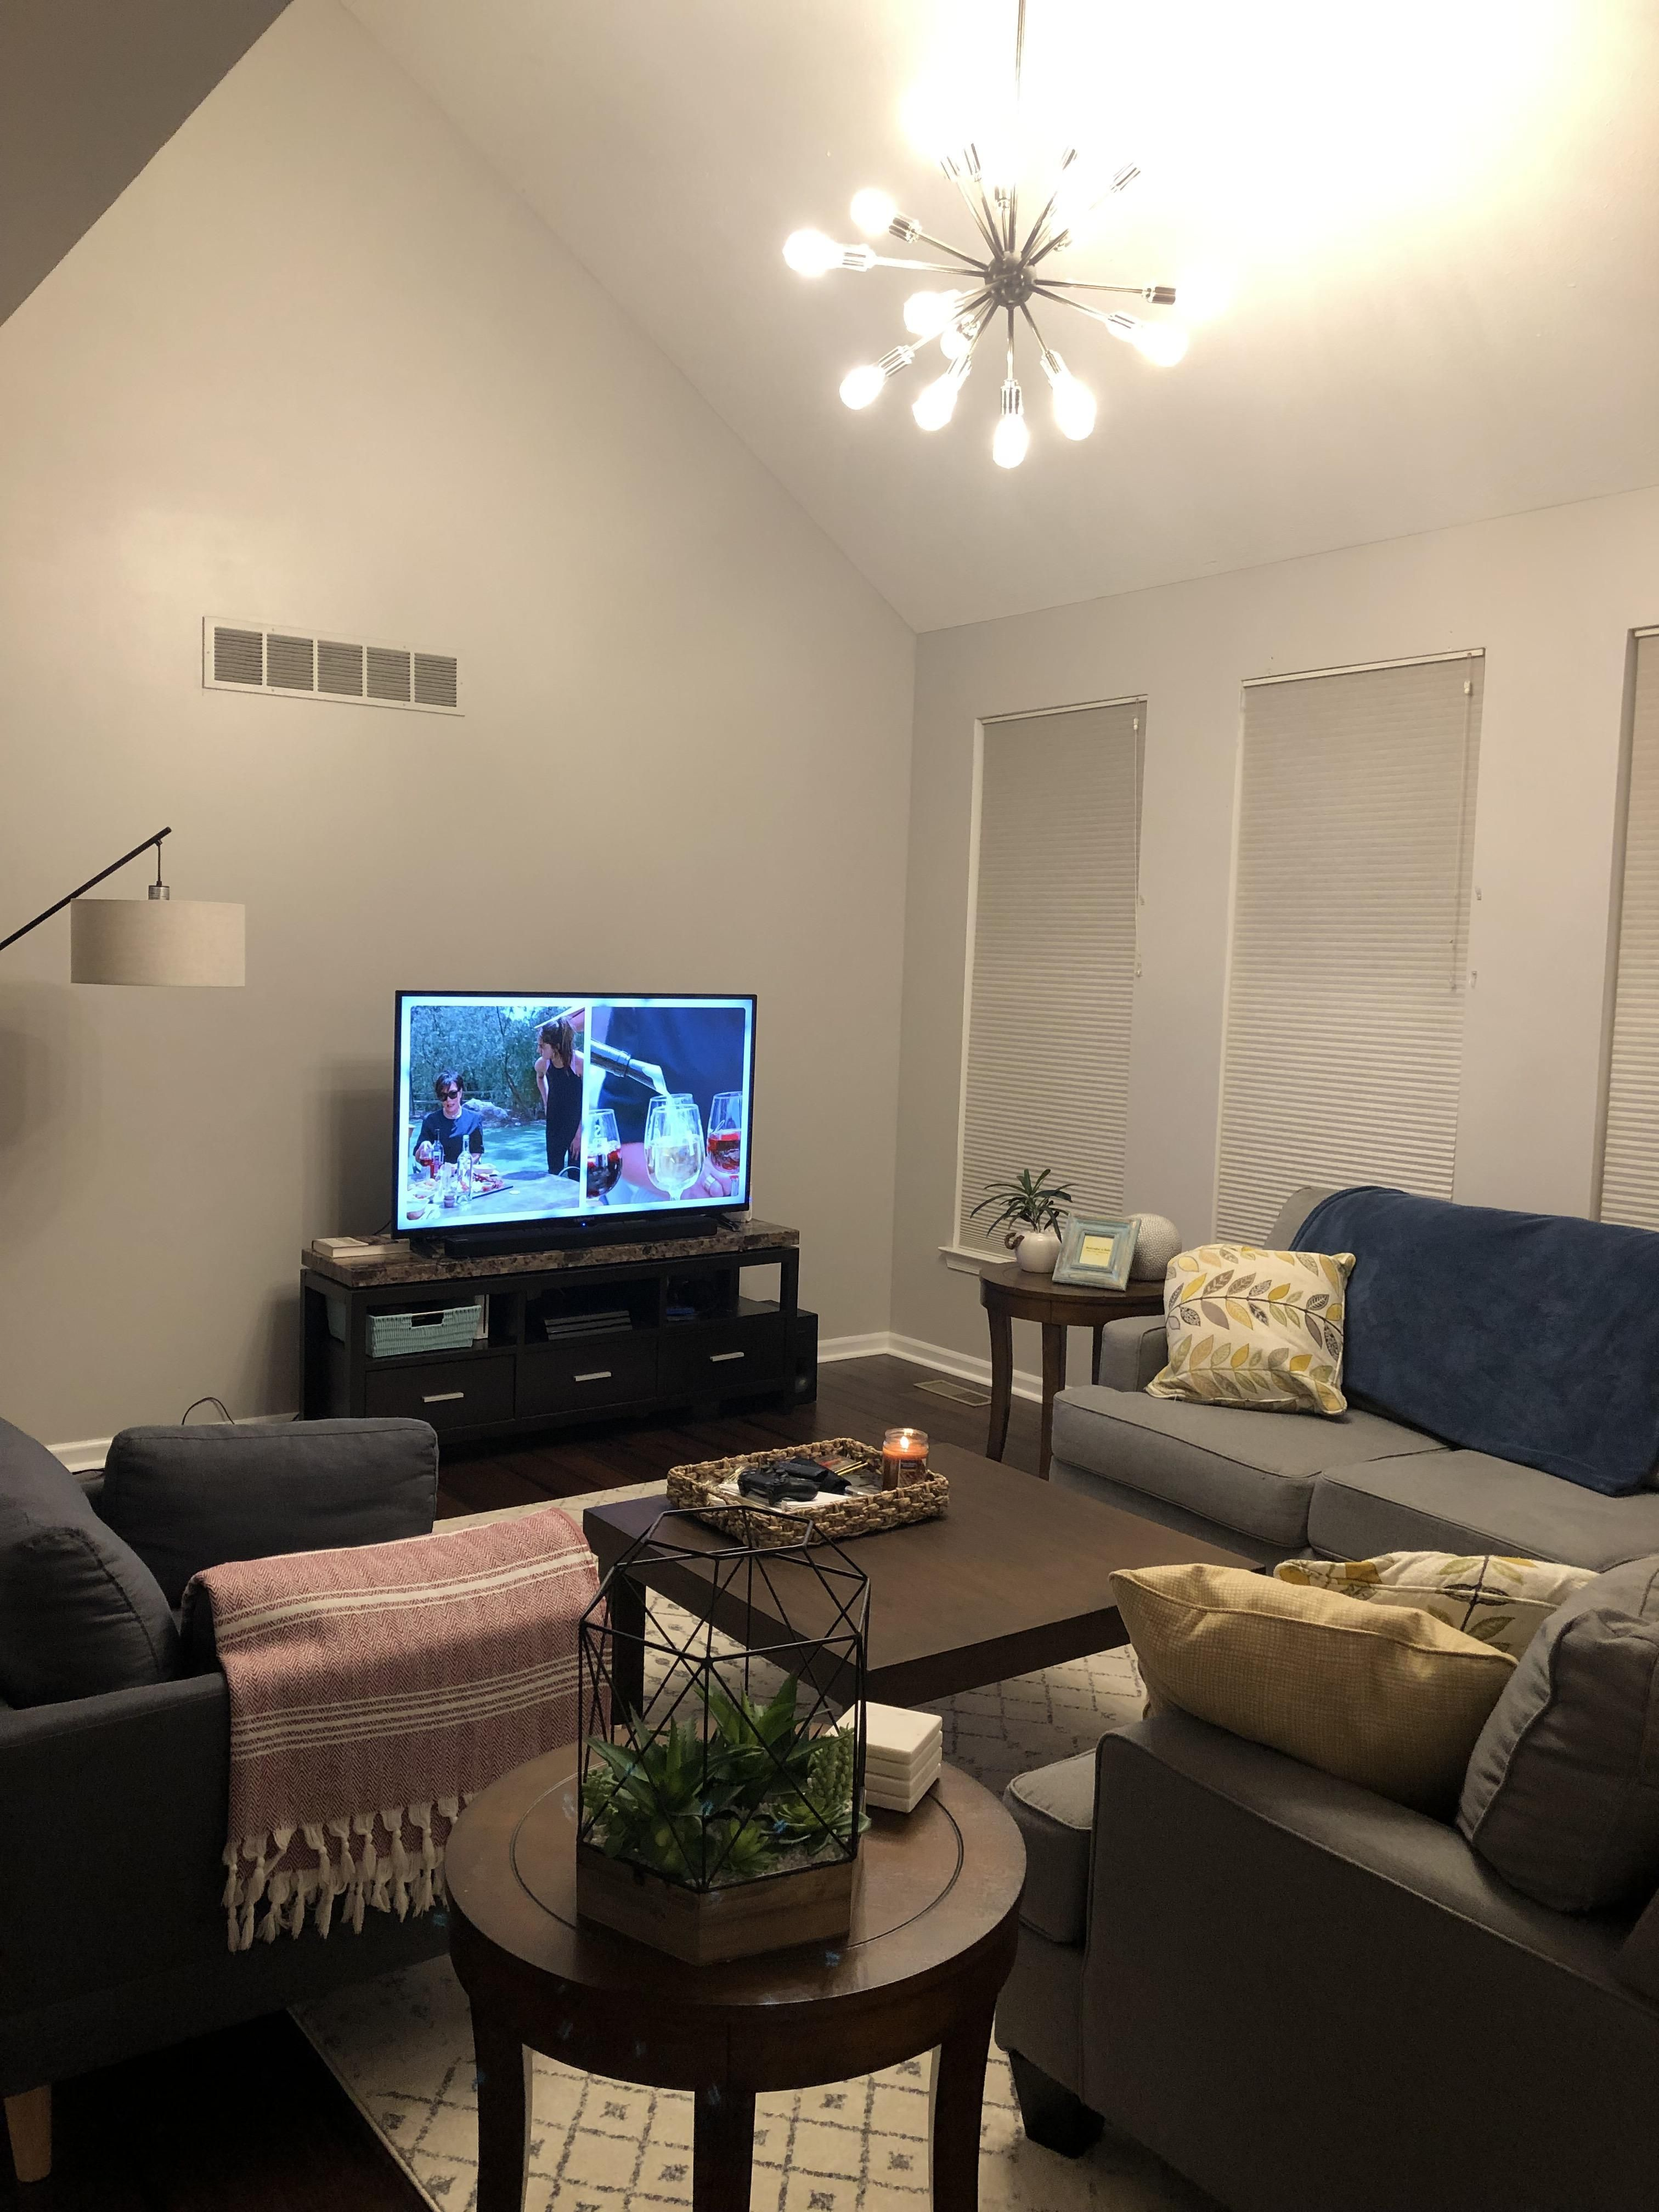 Help Me Design My Living Room: What Can I Do To The Big Empty Wall Behind My TV? Im